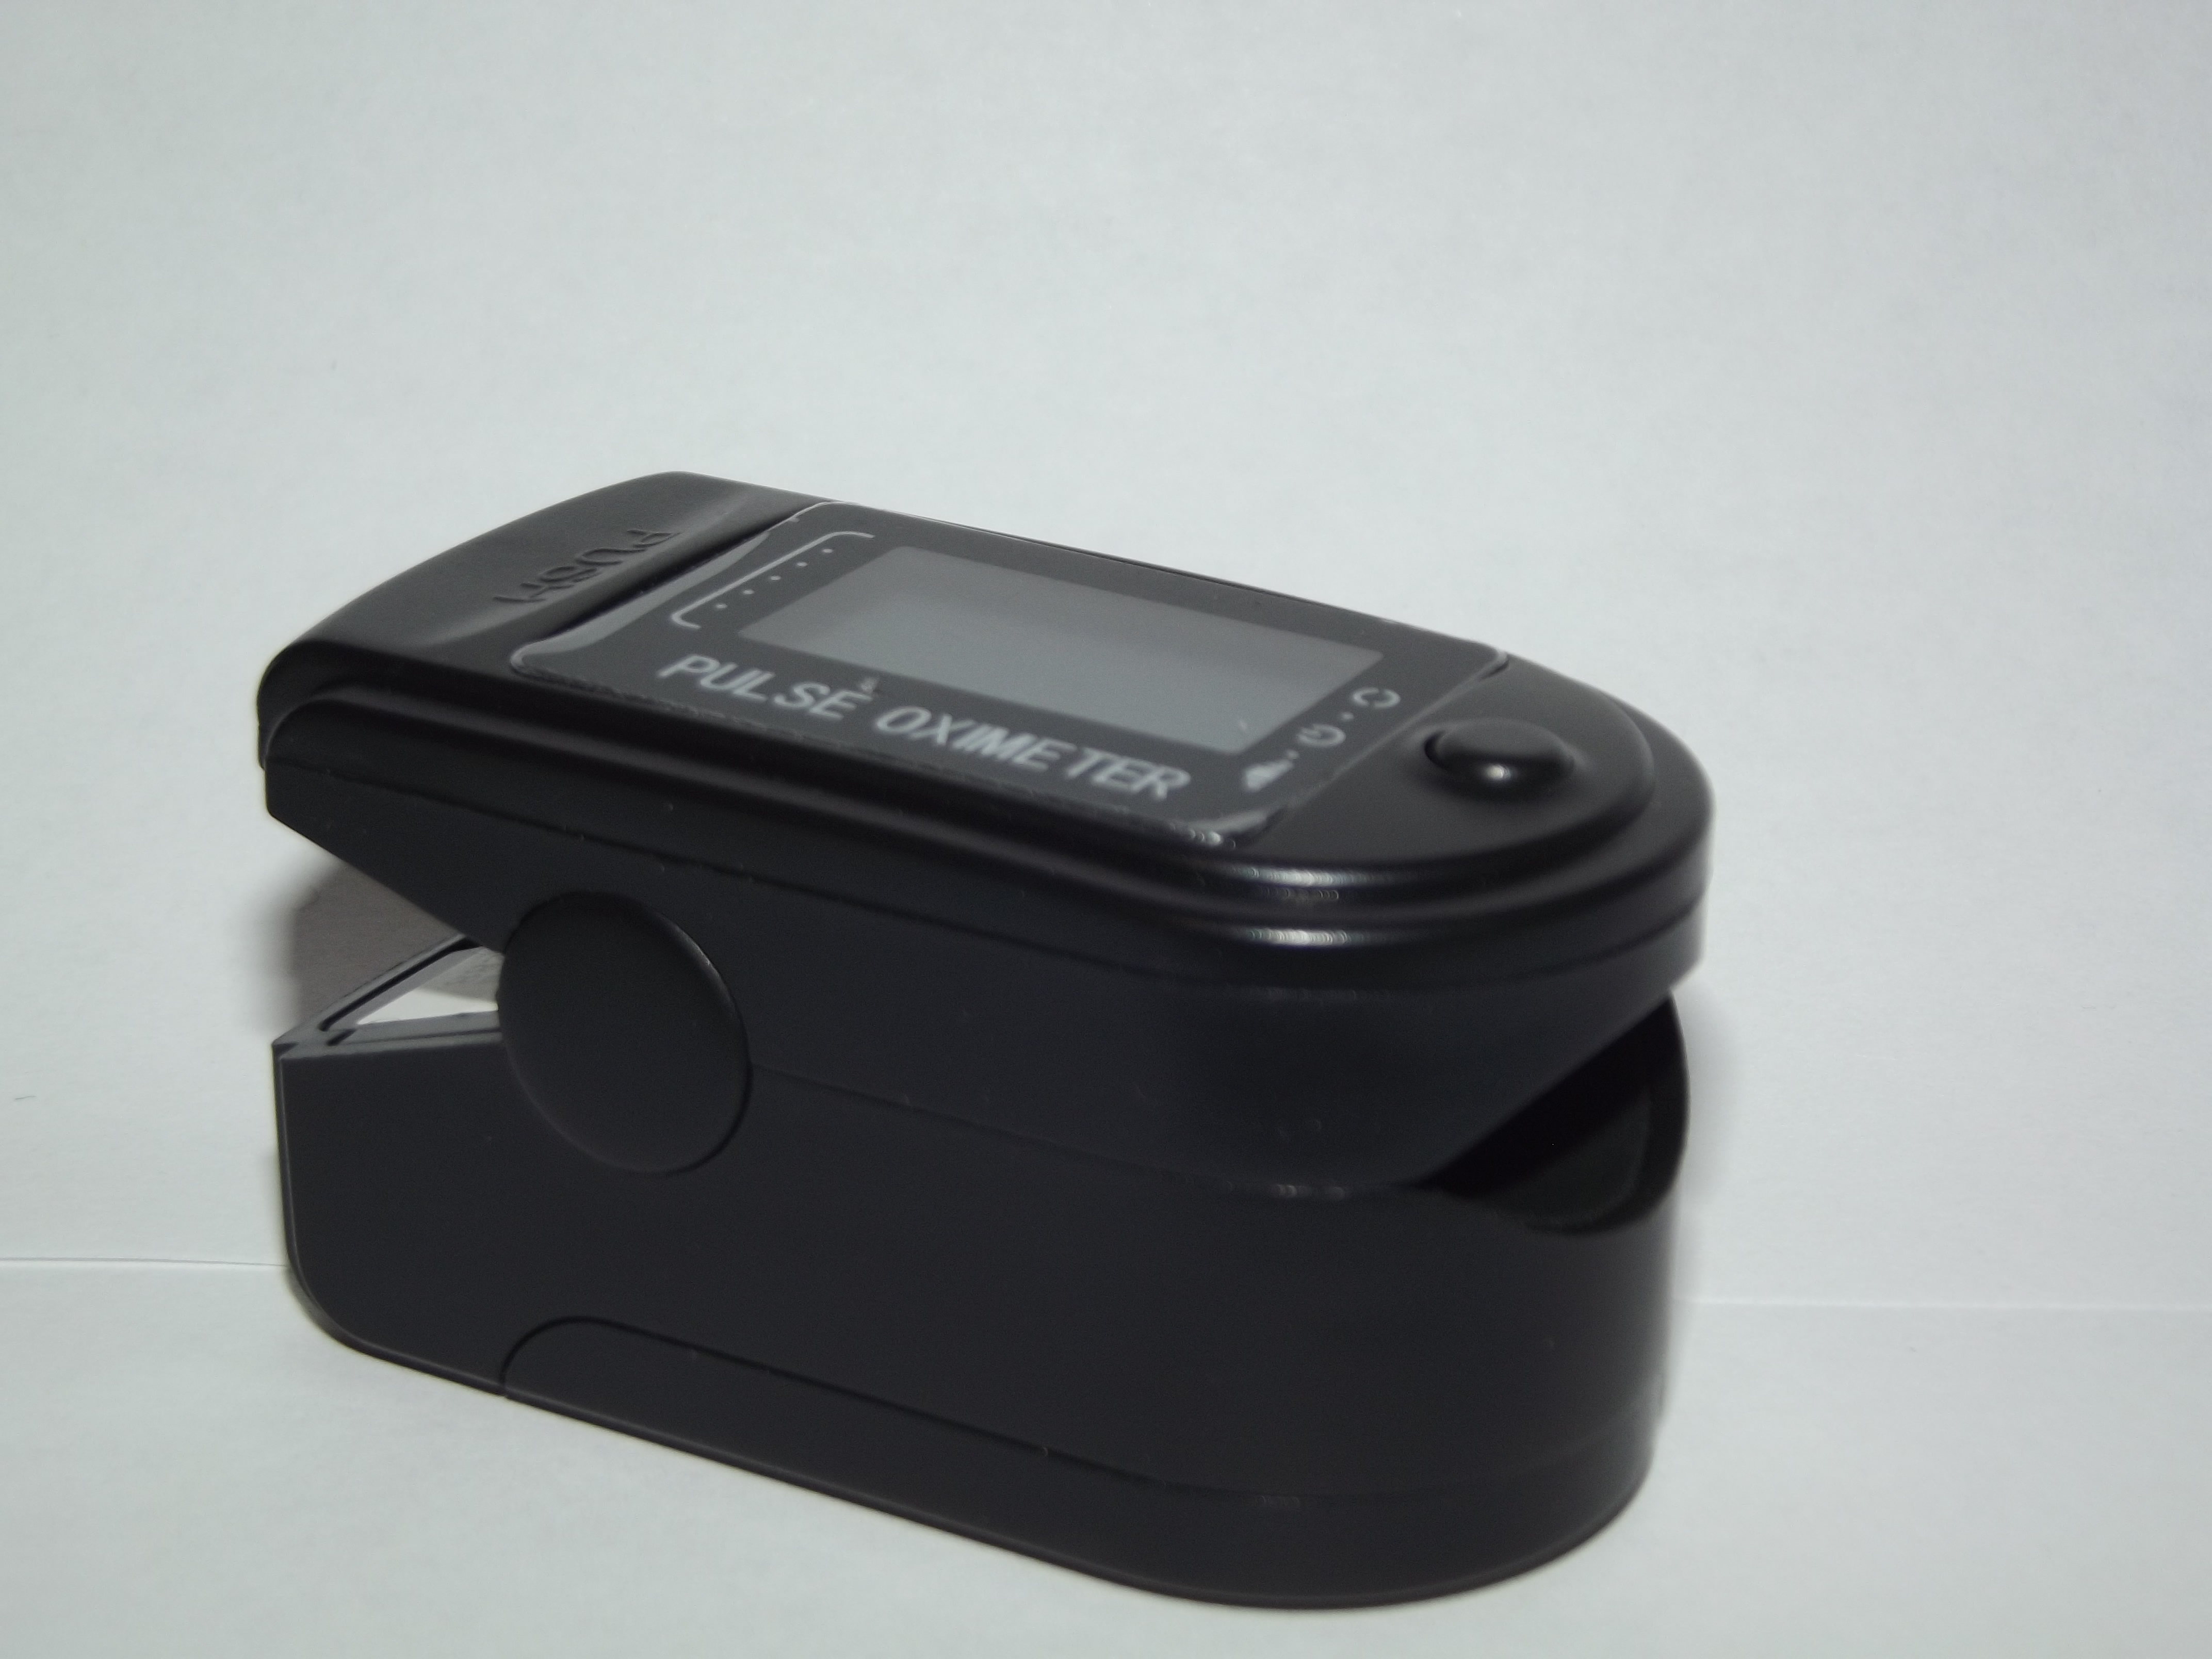 Home pulse oximeters provide convenience for those with COPD.